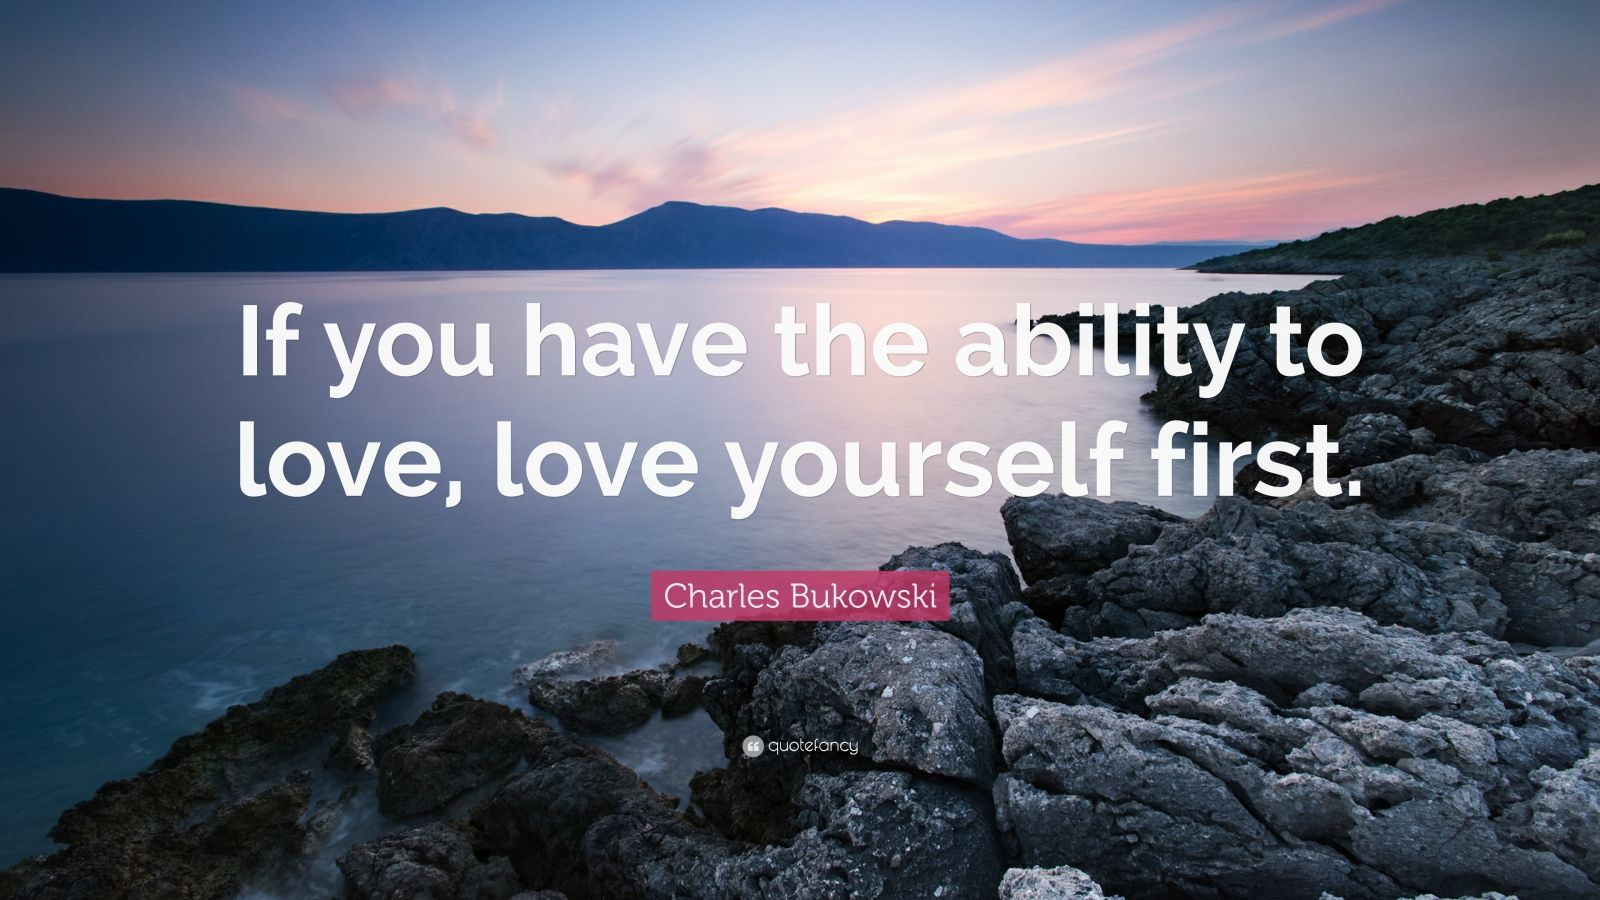 """Firsts Quotes: """"If you have the ability to love, love yourself first."""" — Charles Bukowski"""